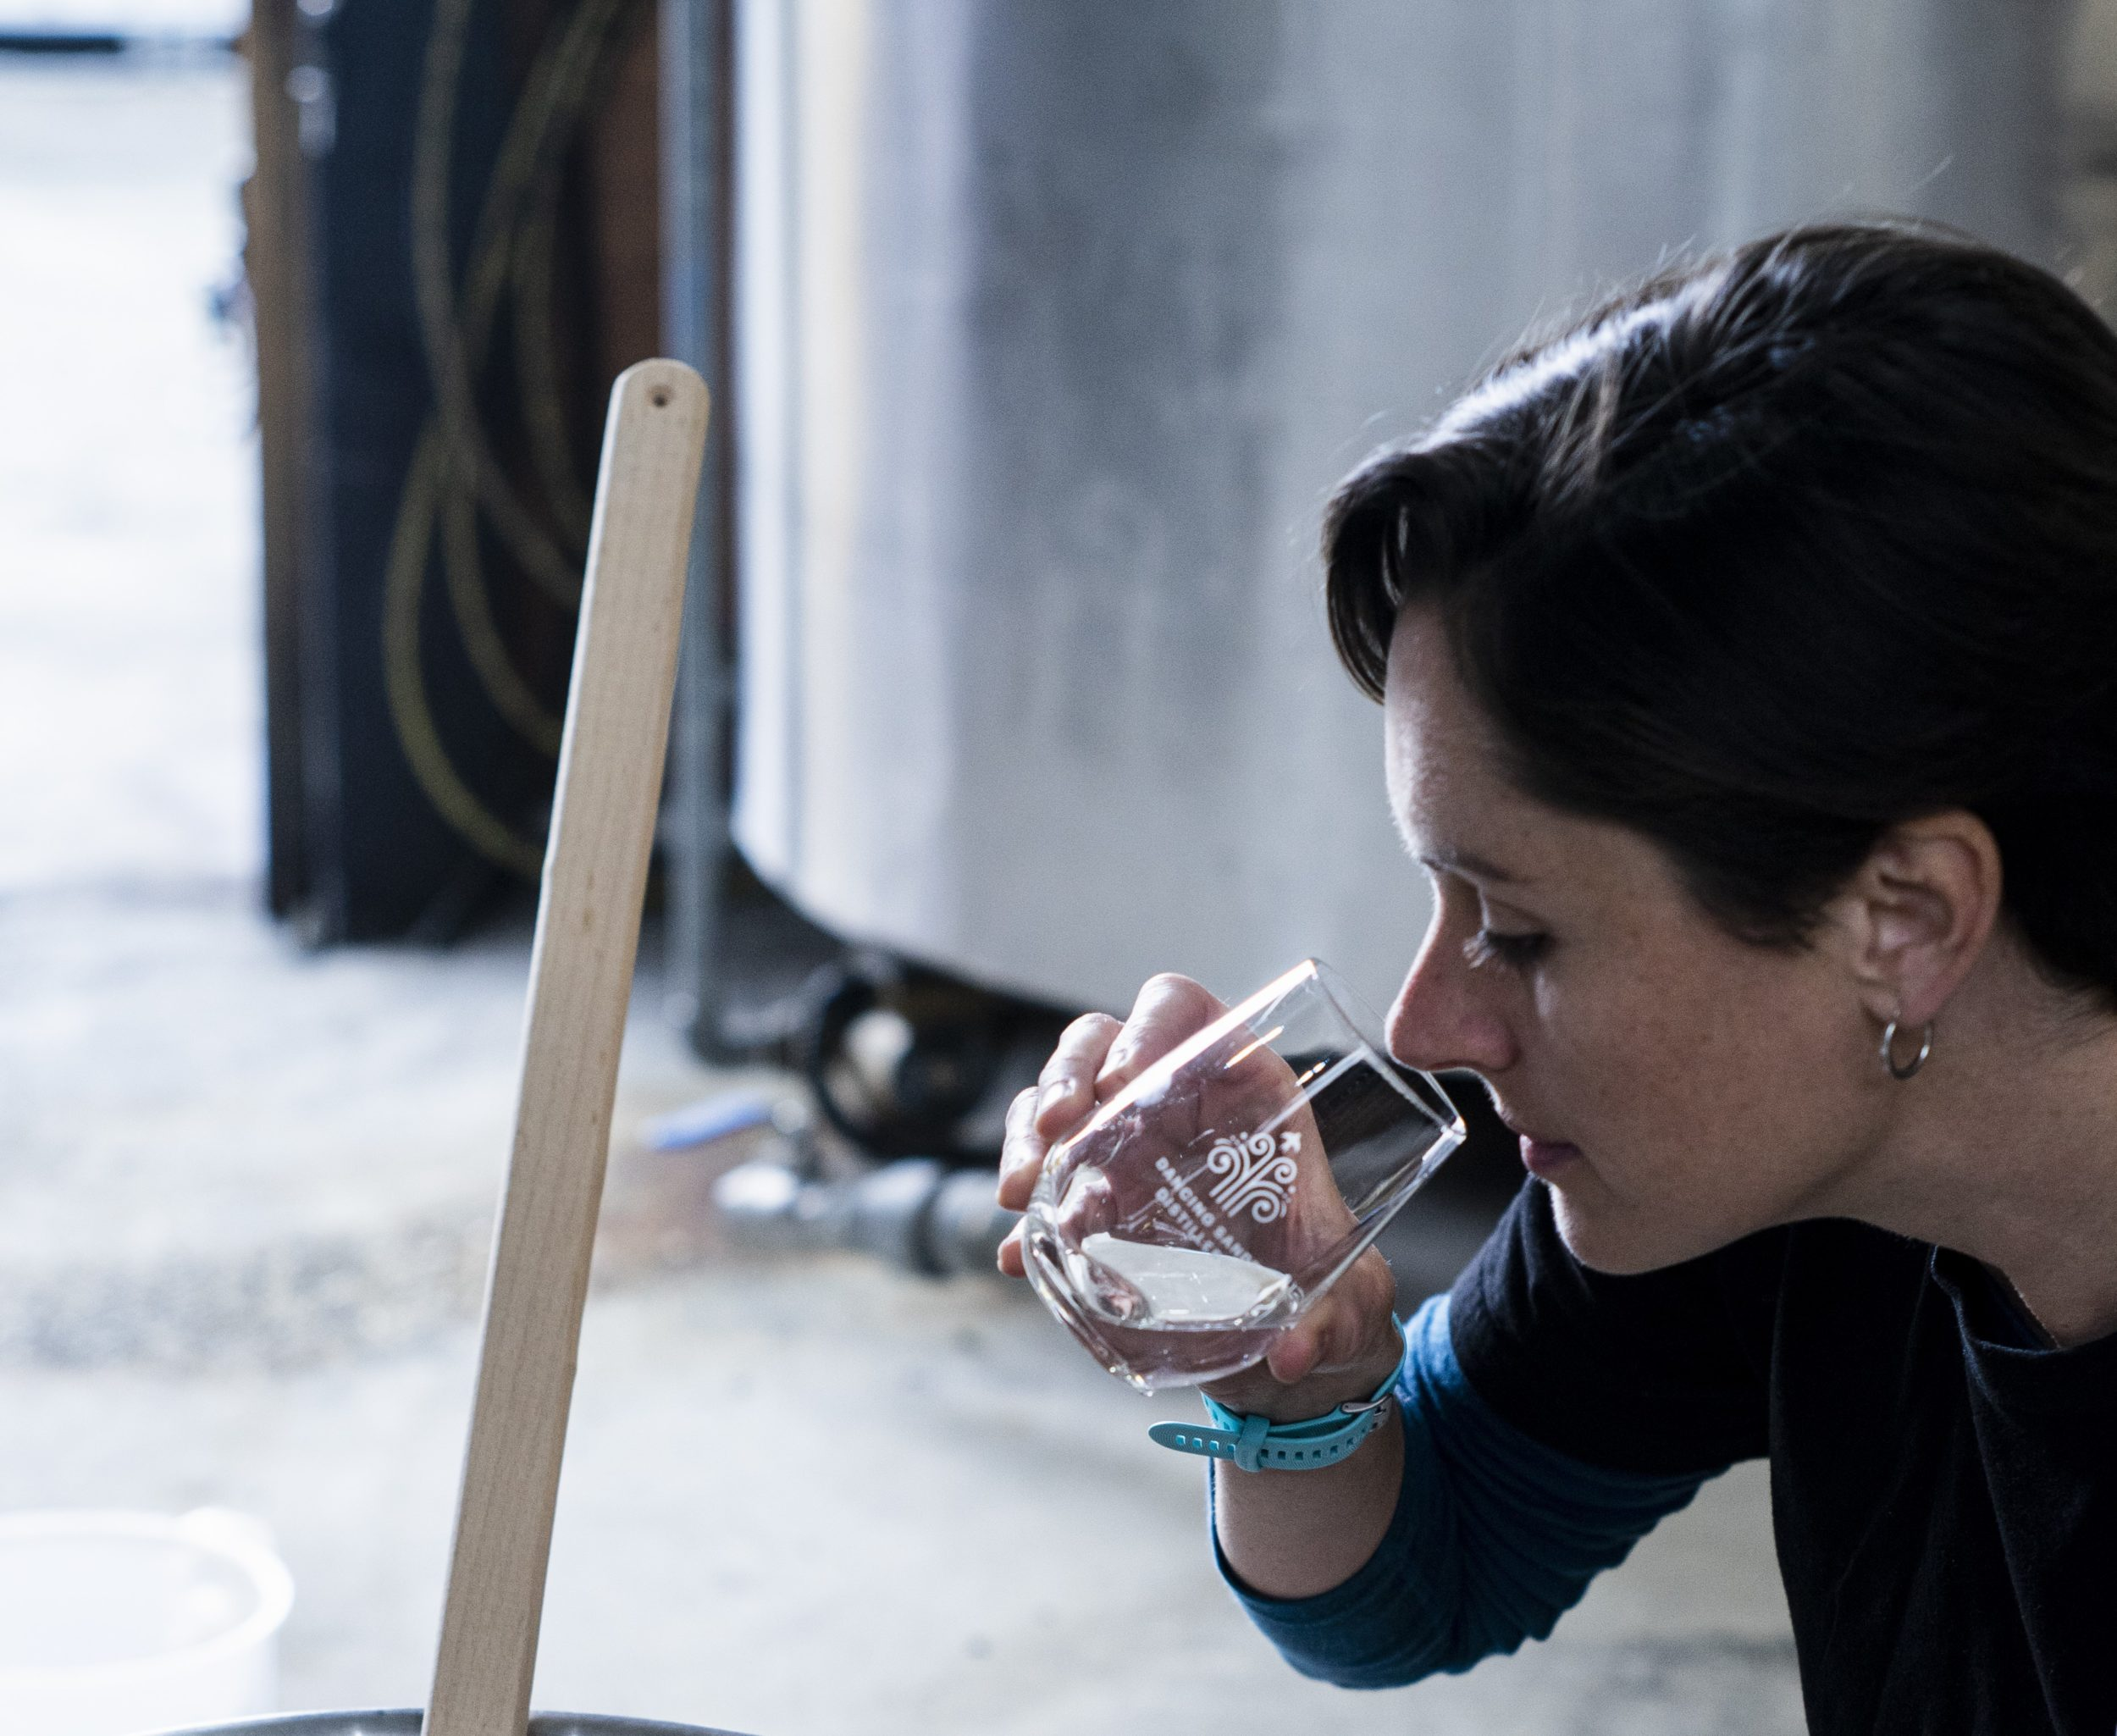 Sarah tasting Dancing Sands gin to test its quality